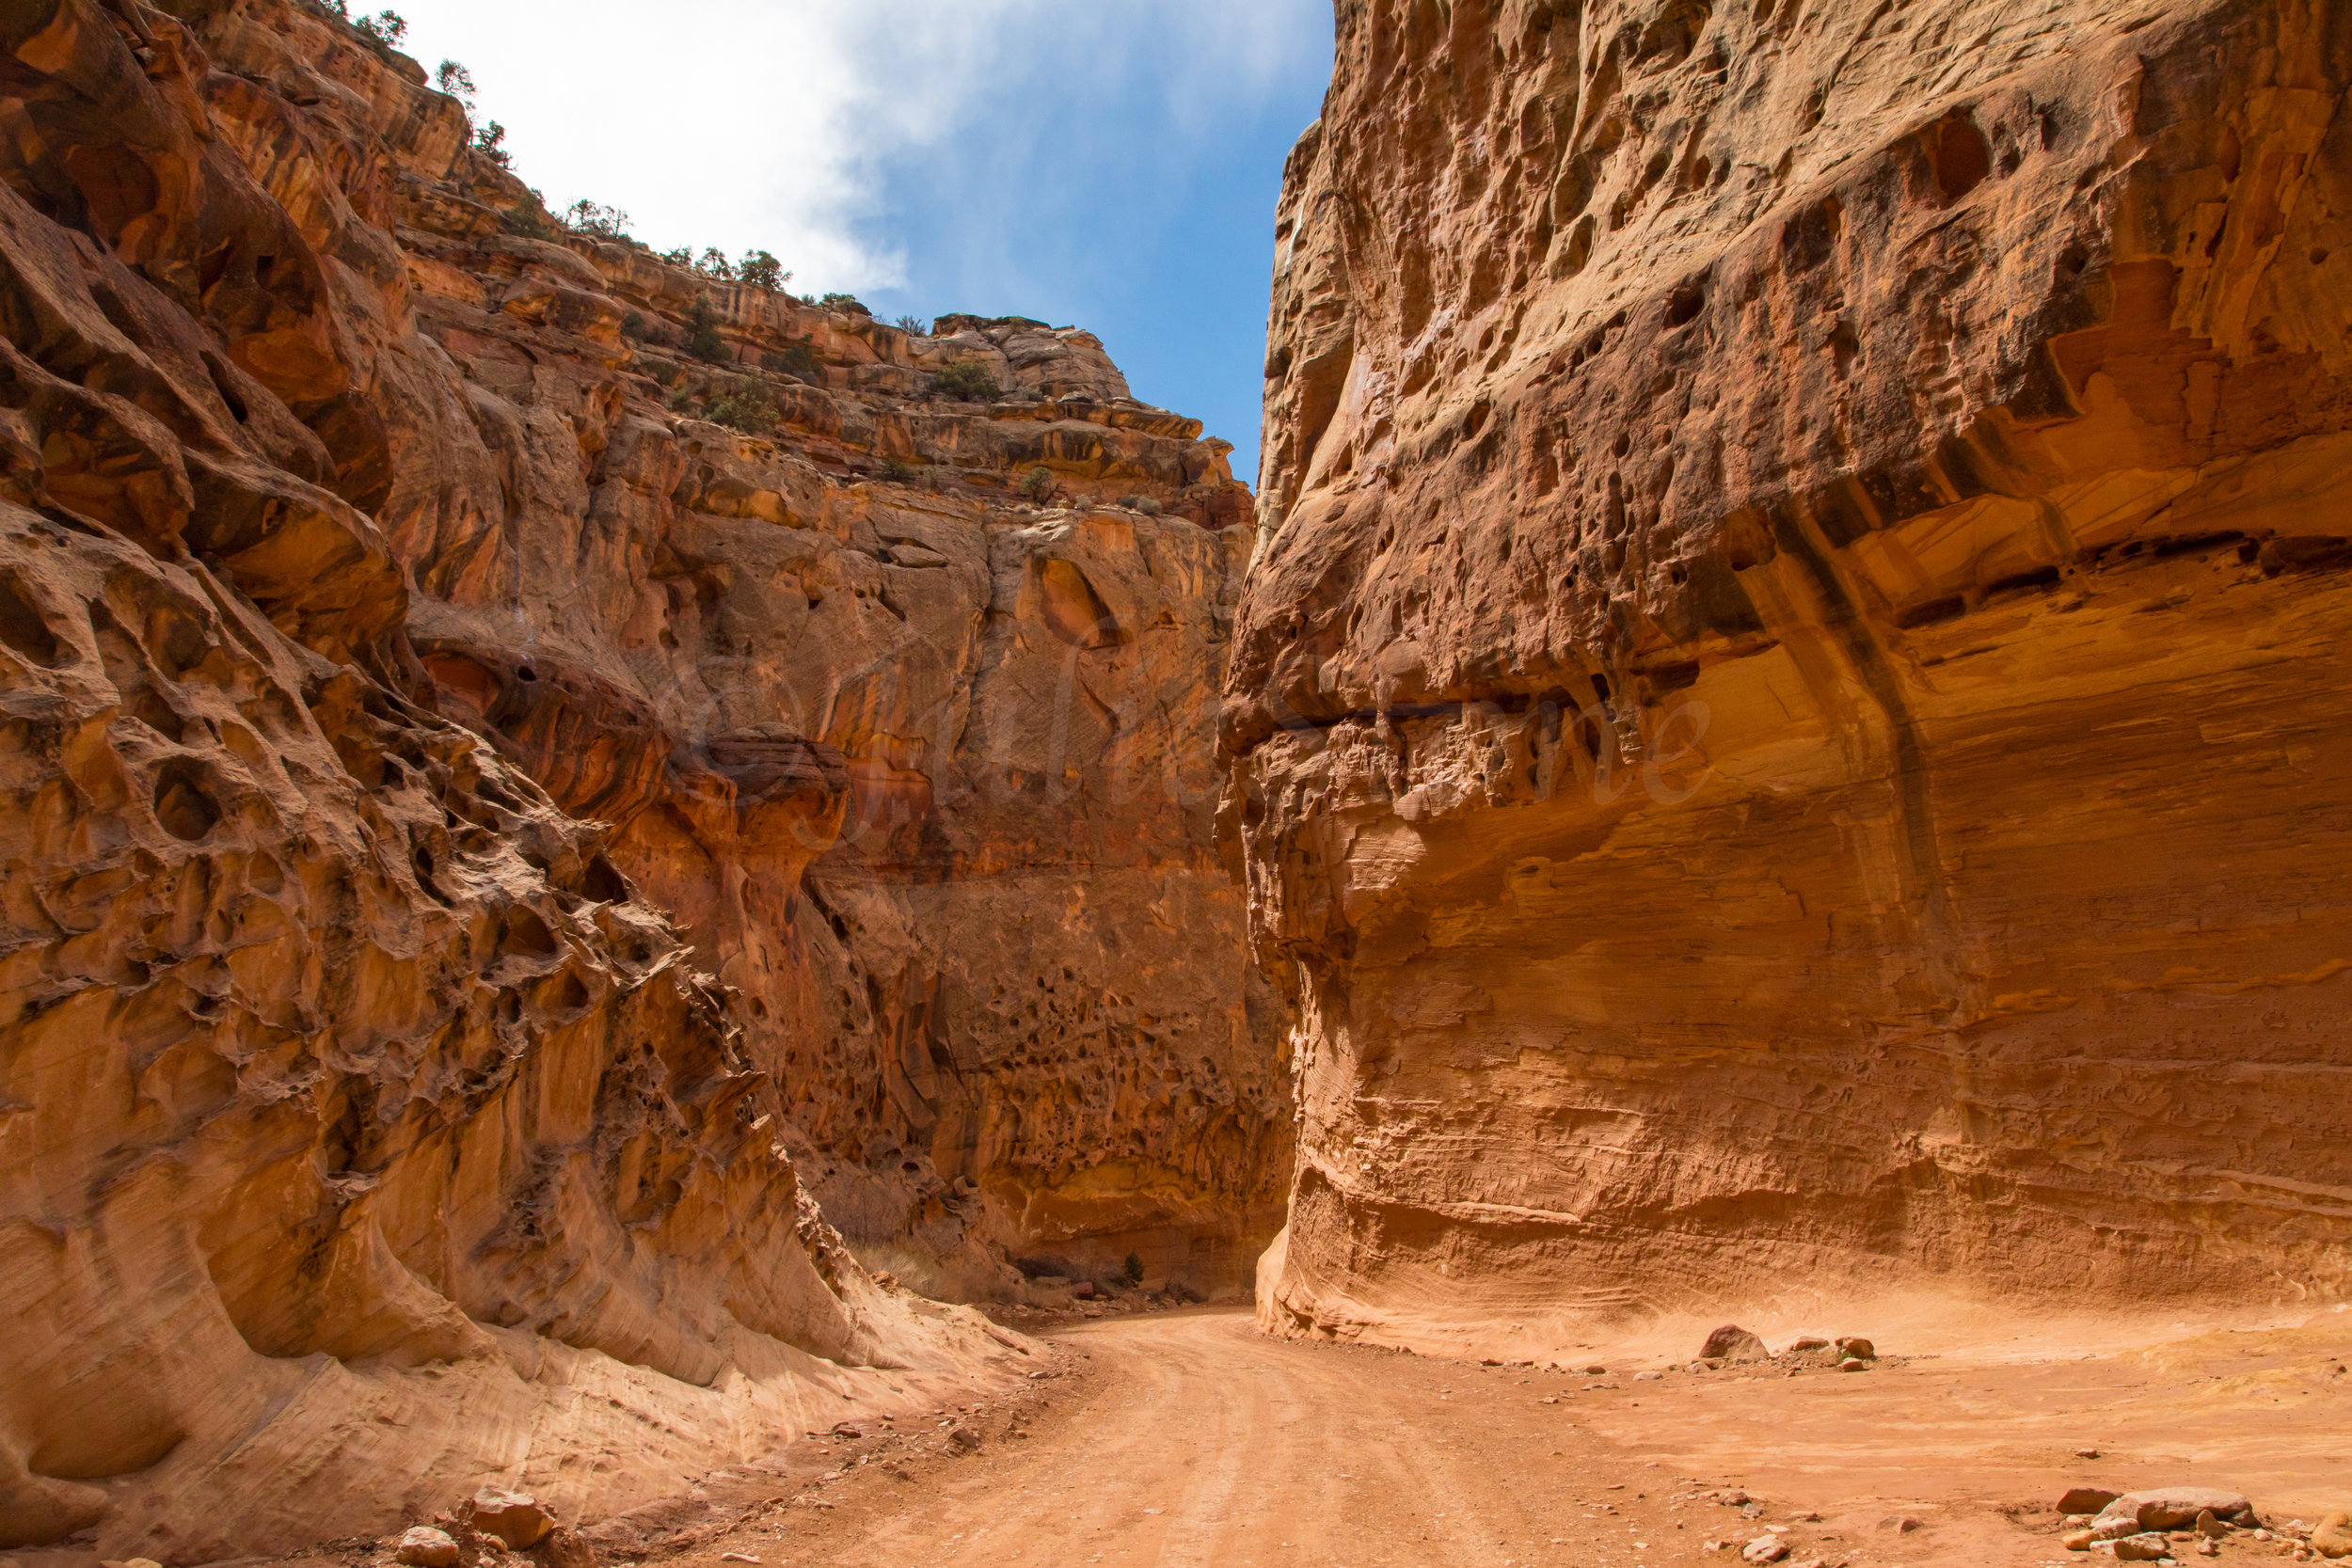 Capitol Reef National Park, Image # 0062